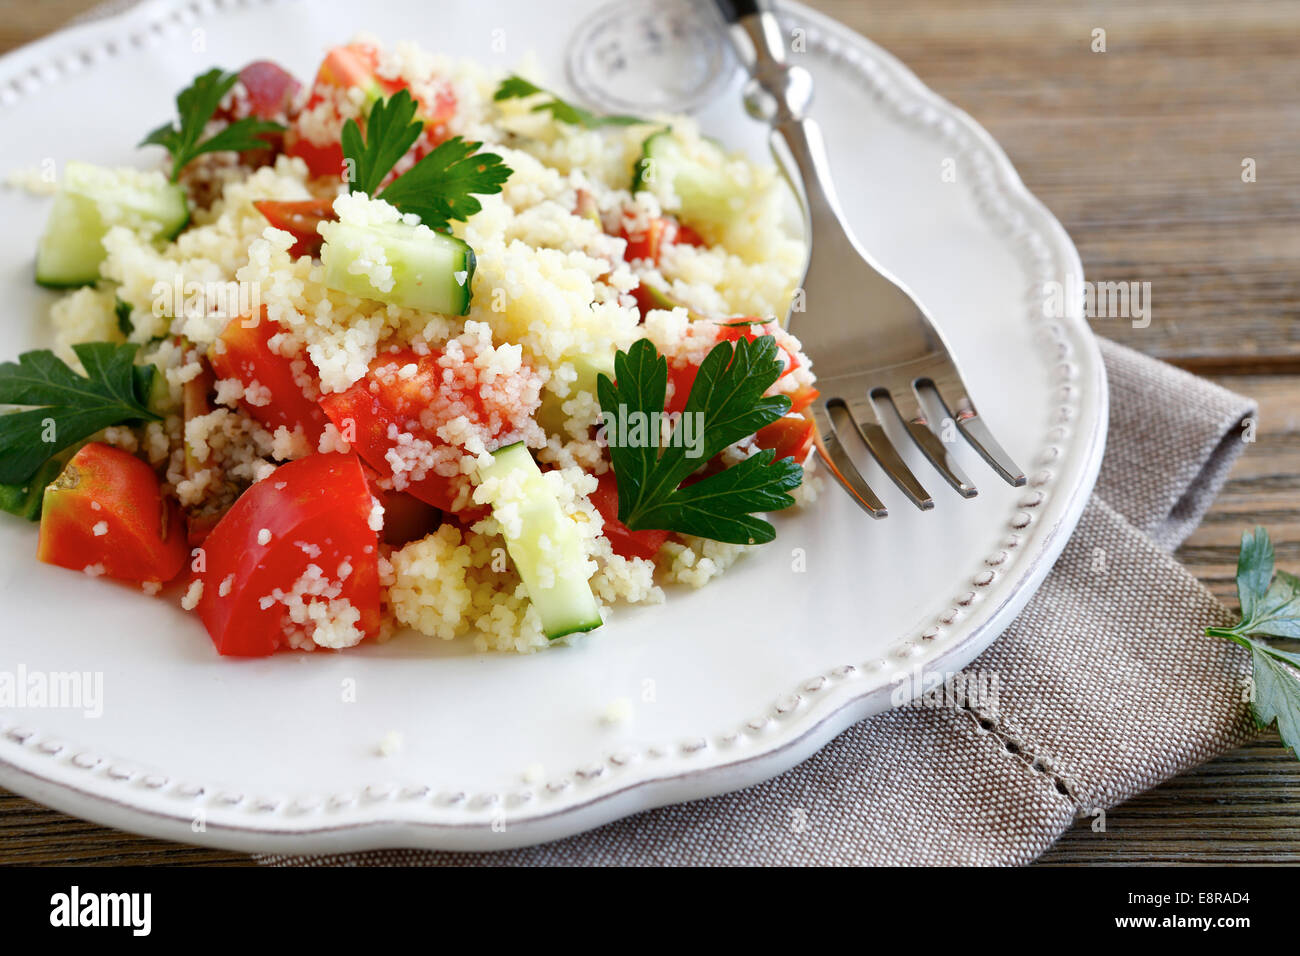 Salad with couscous and vegetables on a white plate, food closeup - Stock Image